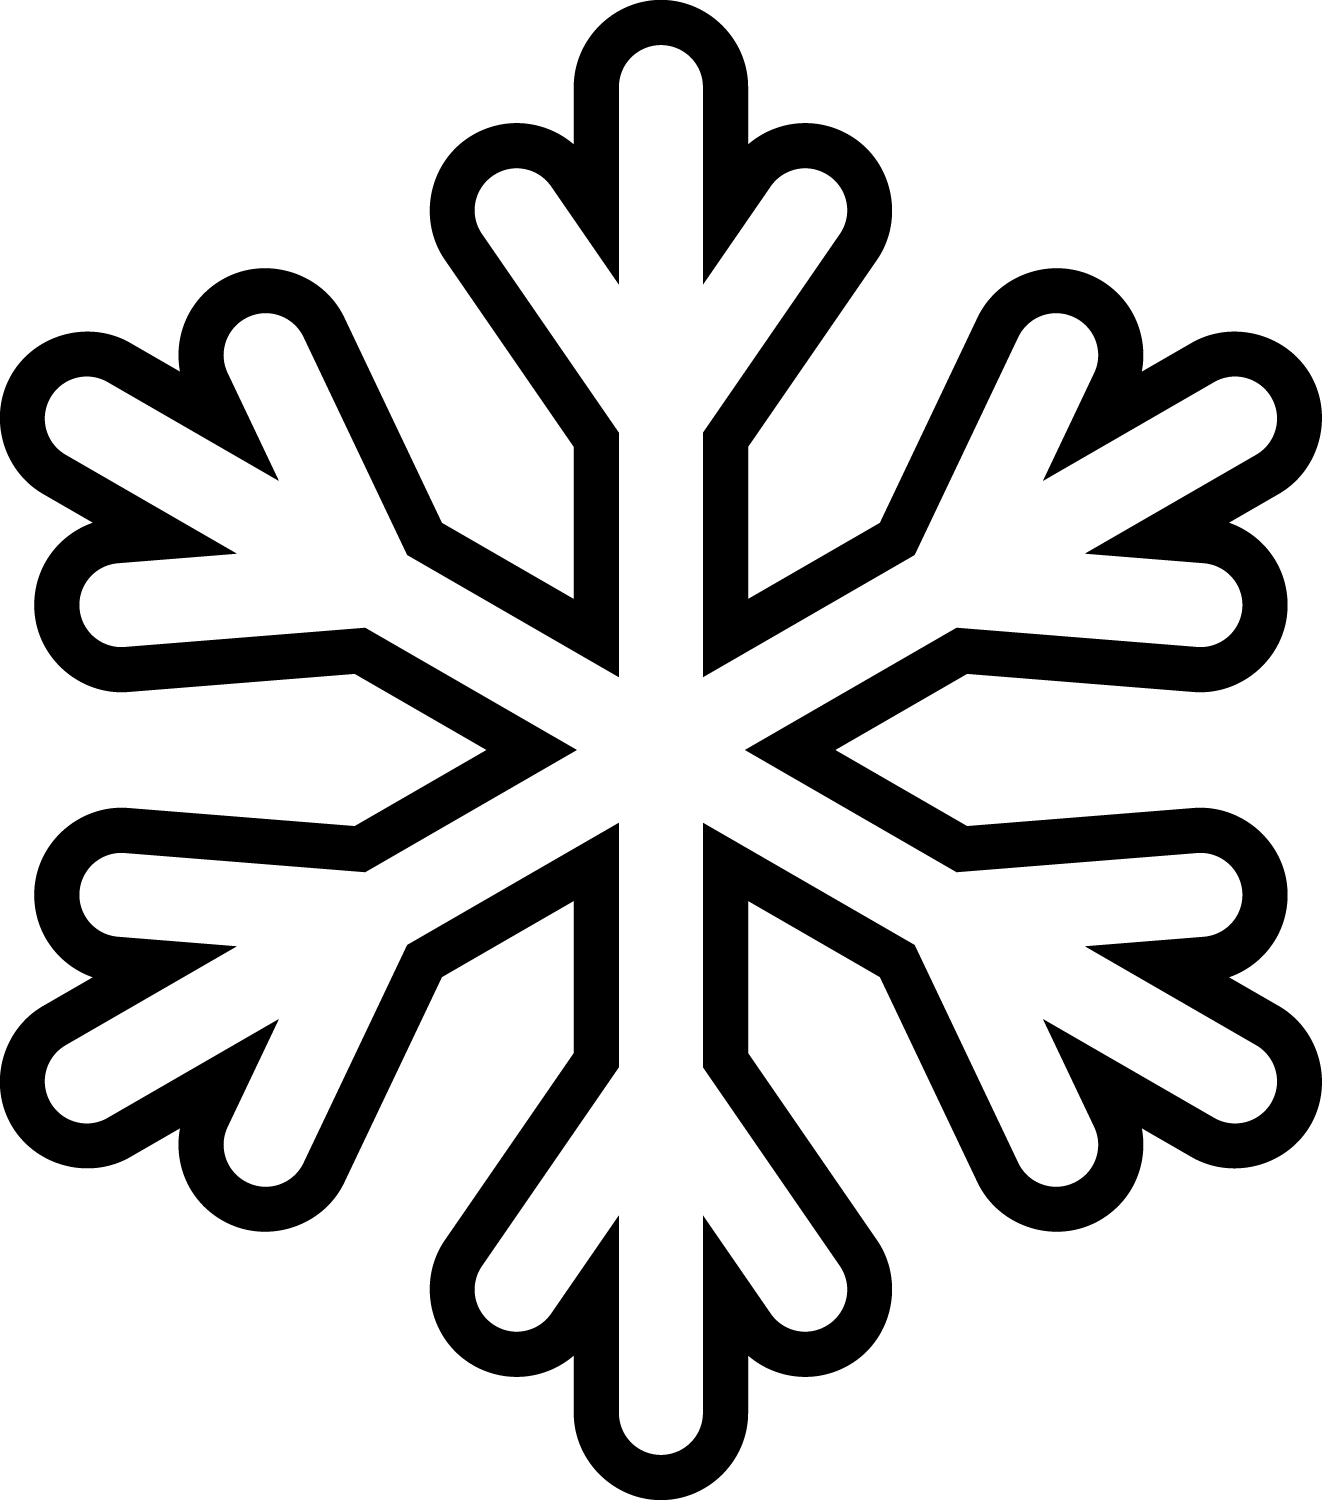 snowflake-clipart-outline-xigKKLE5T.png.cf.png (1322×1500) | Diy ... graphic transparent library